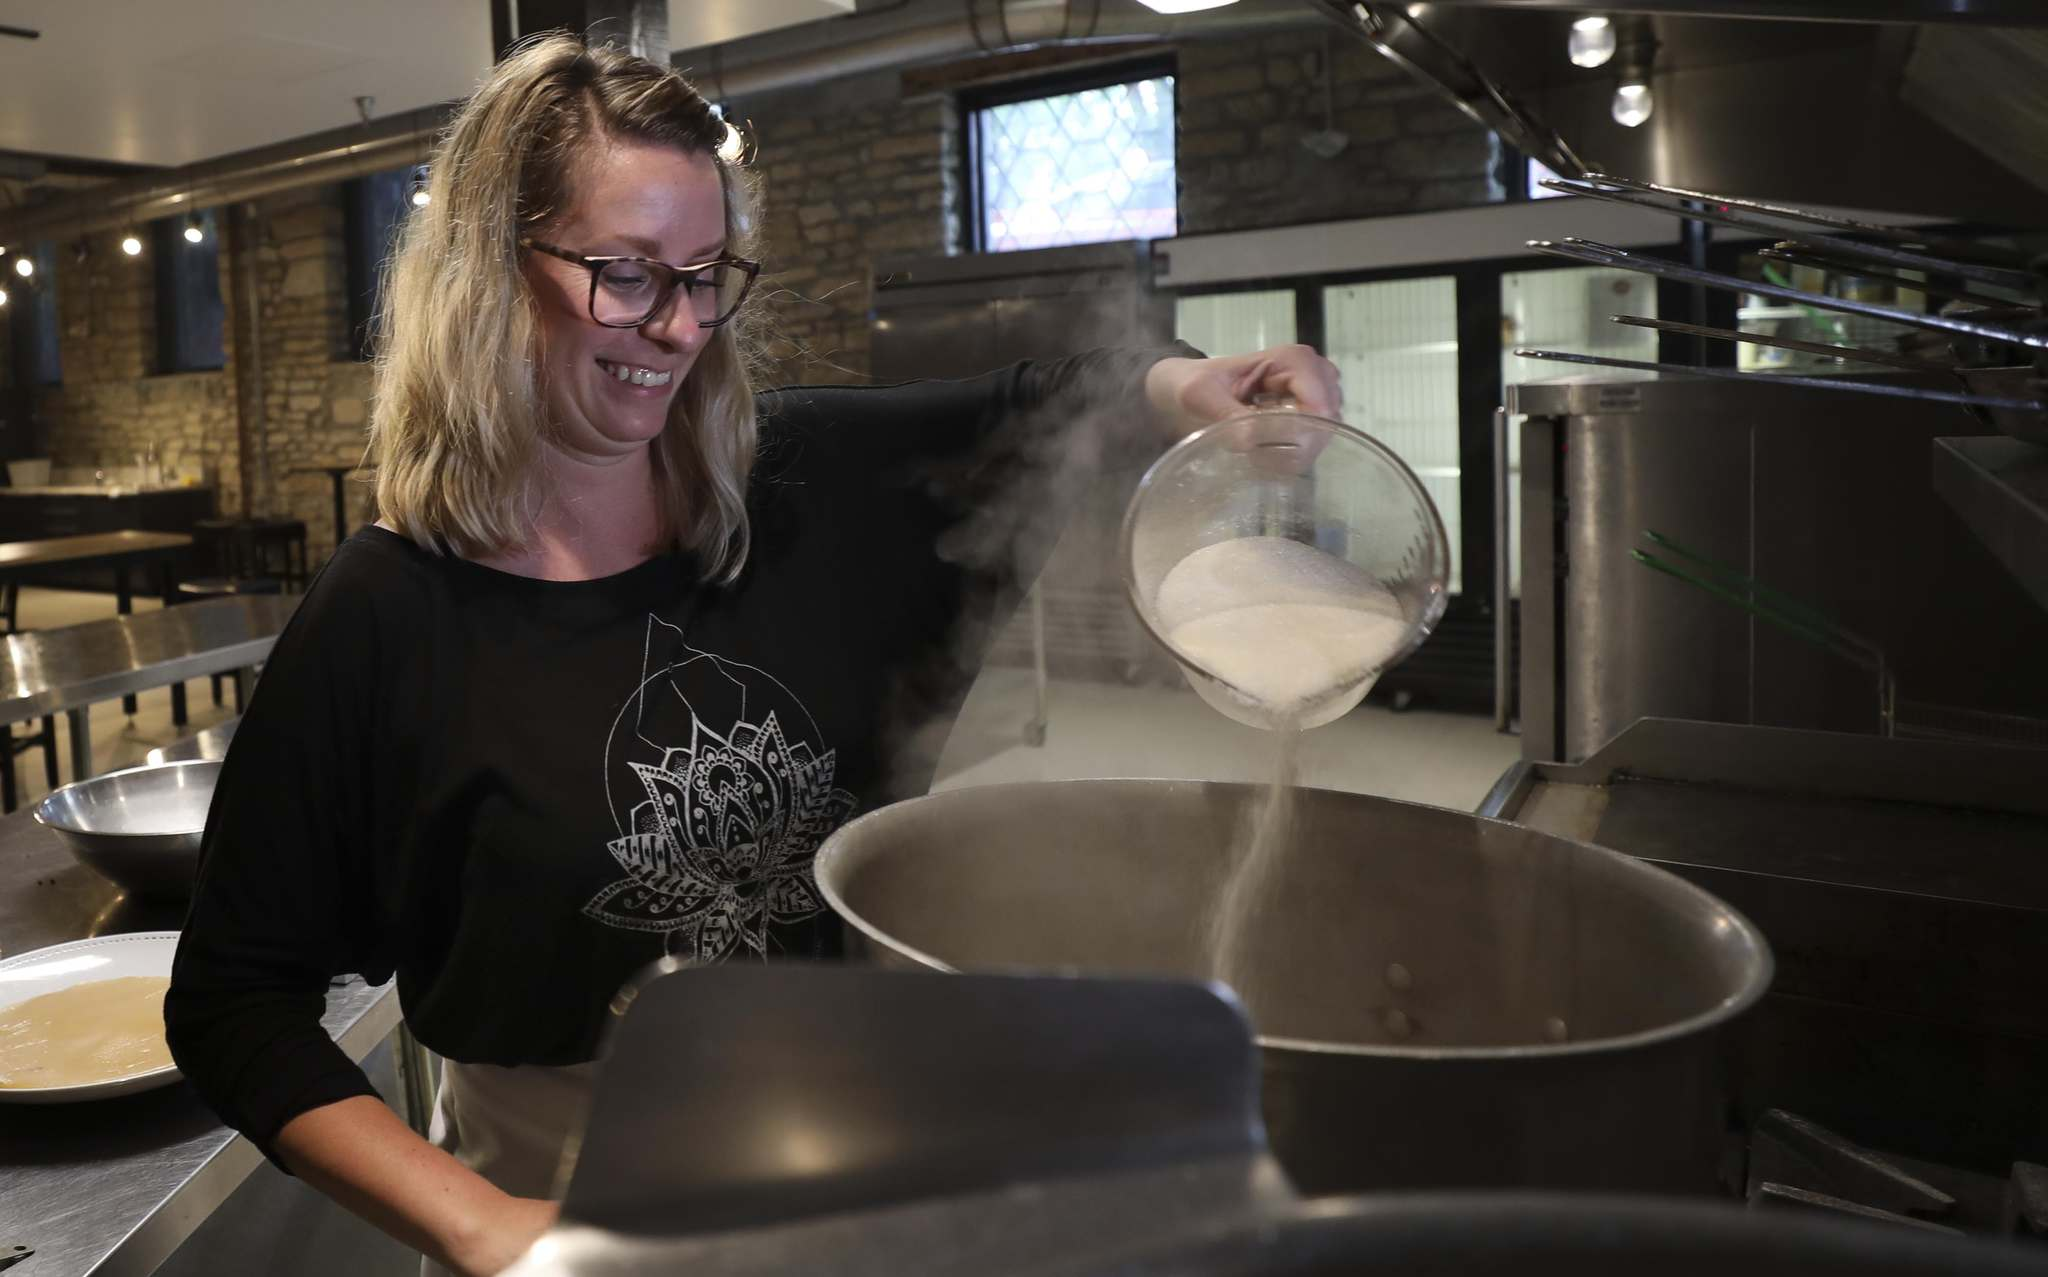 At first Leclair was content running Wolseley Kombucha out of her Alloway Avenue home, but as demand increased she found herself searching for commercial kitchen space.